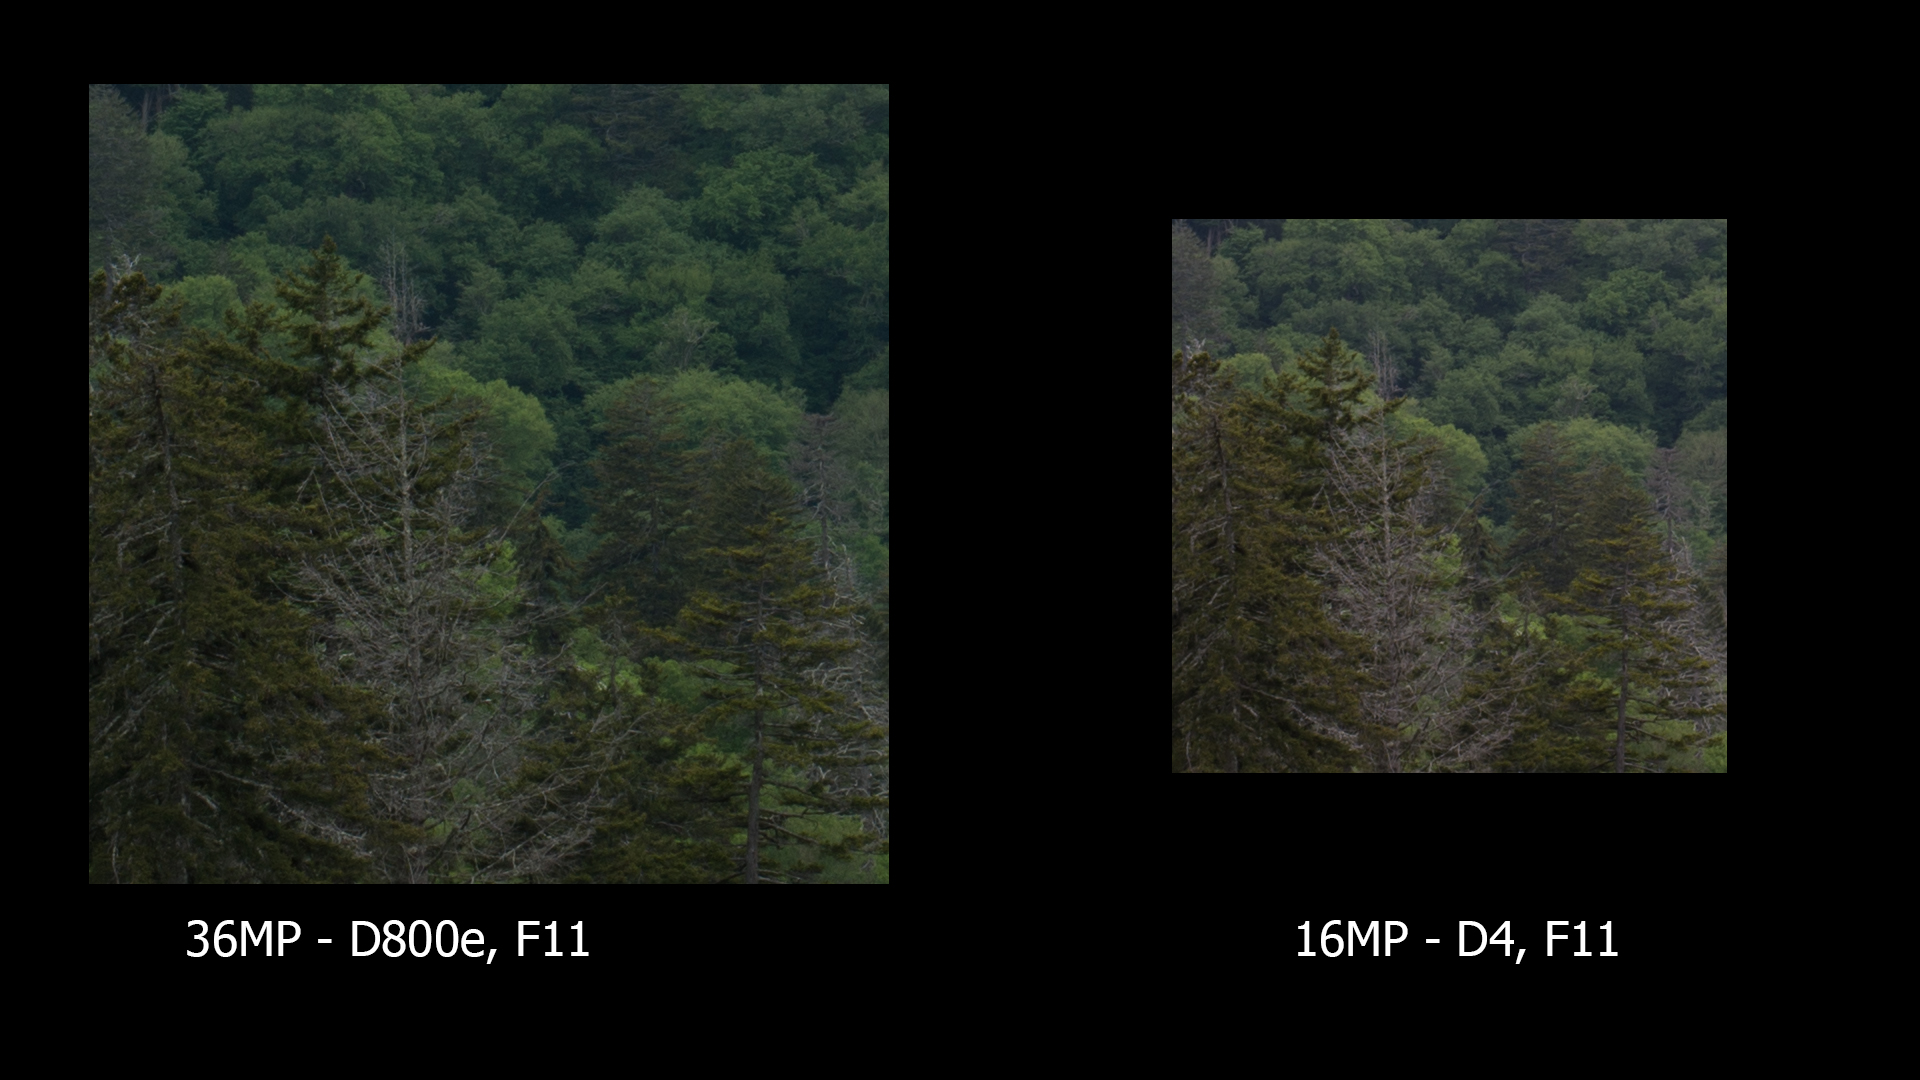 Same area, D800e and D4